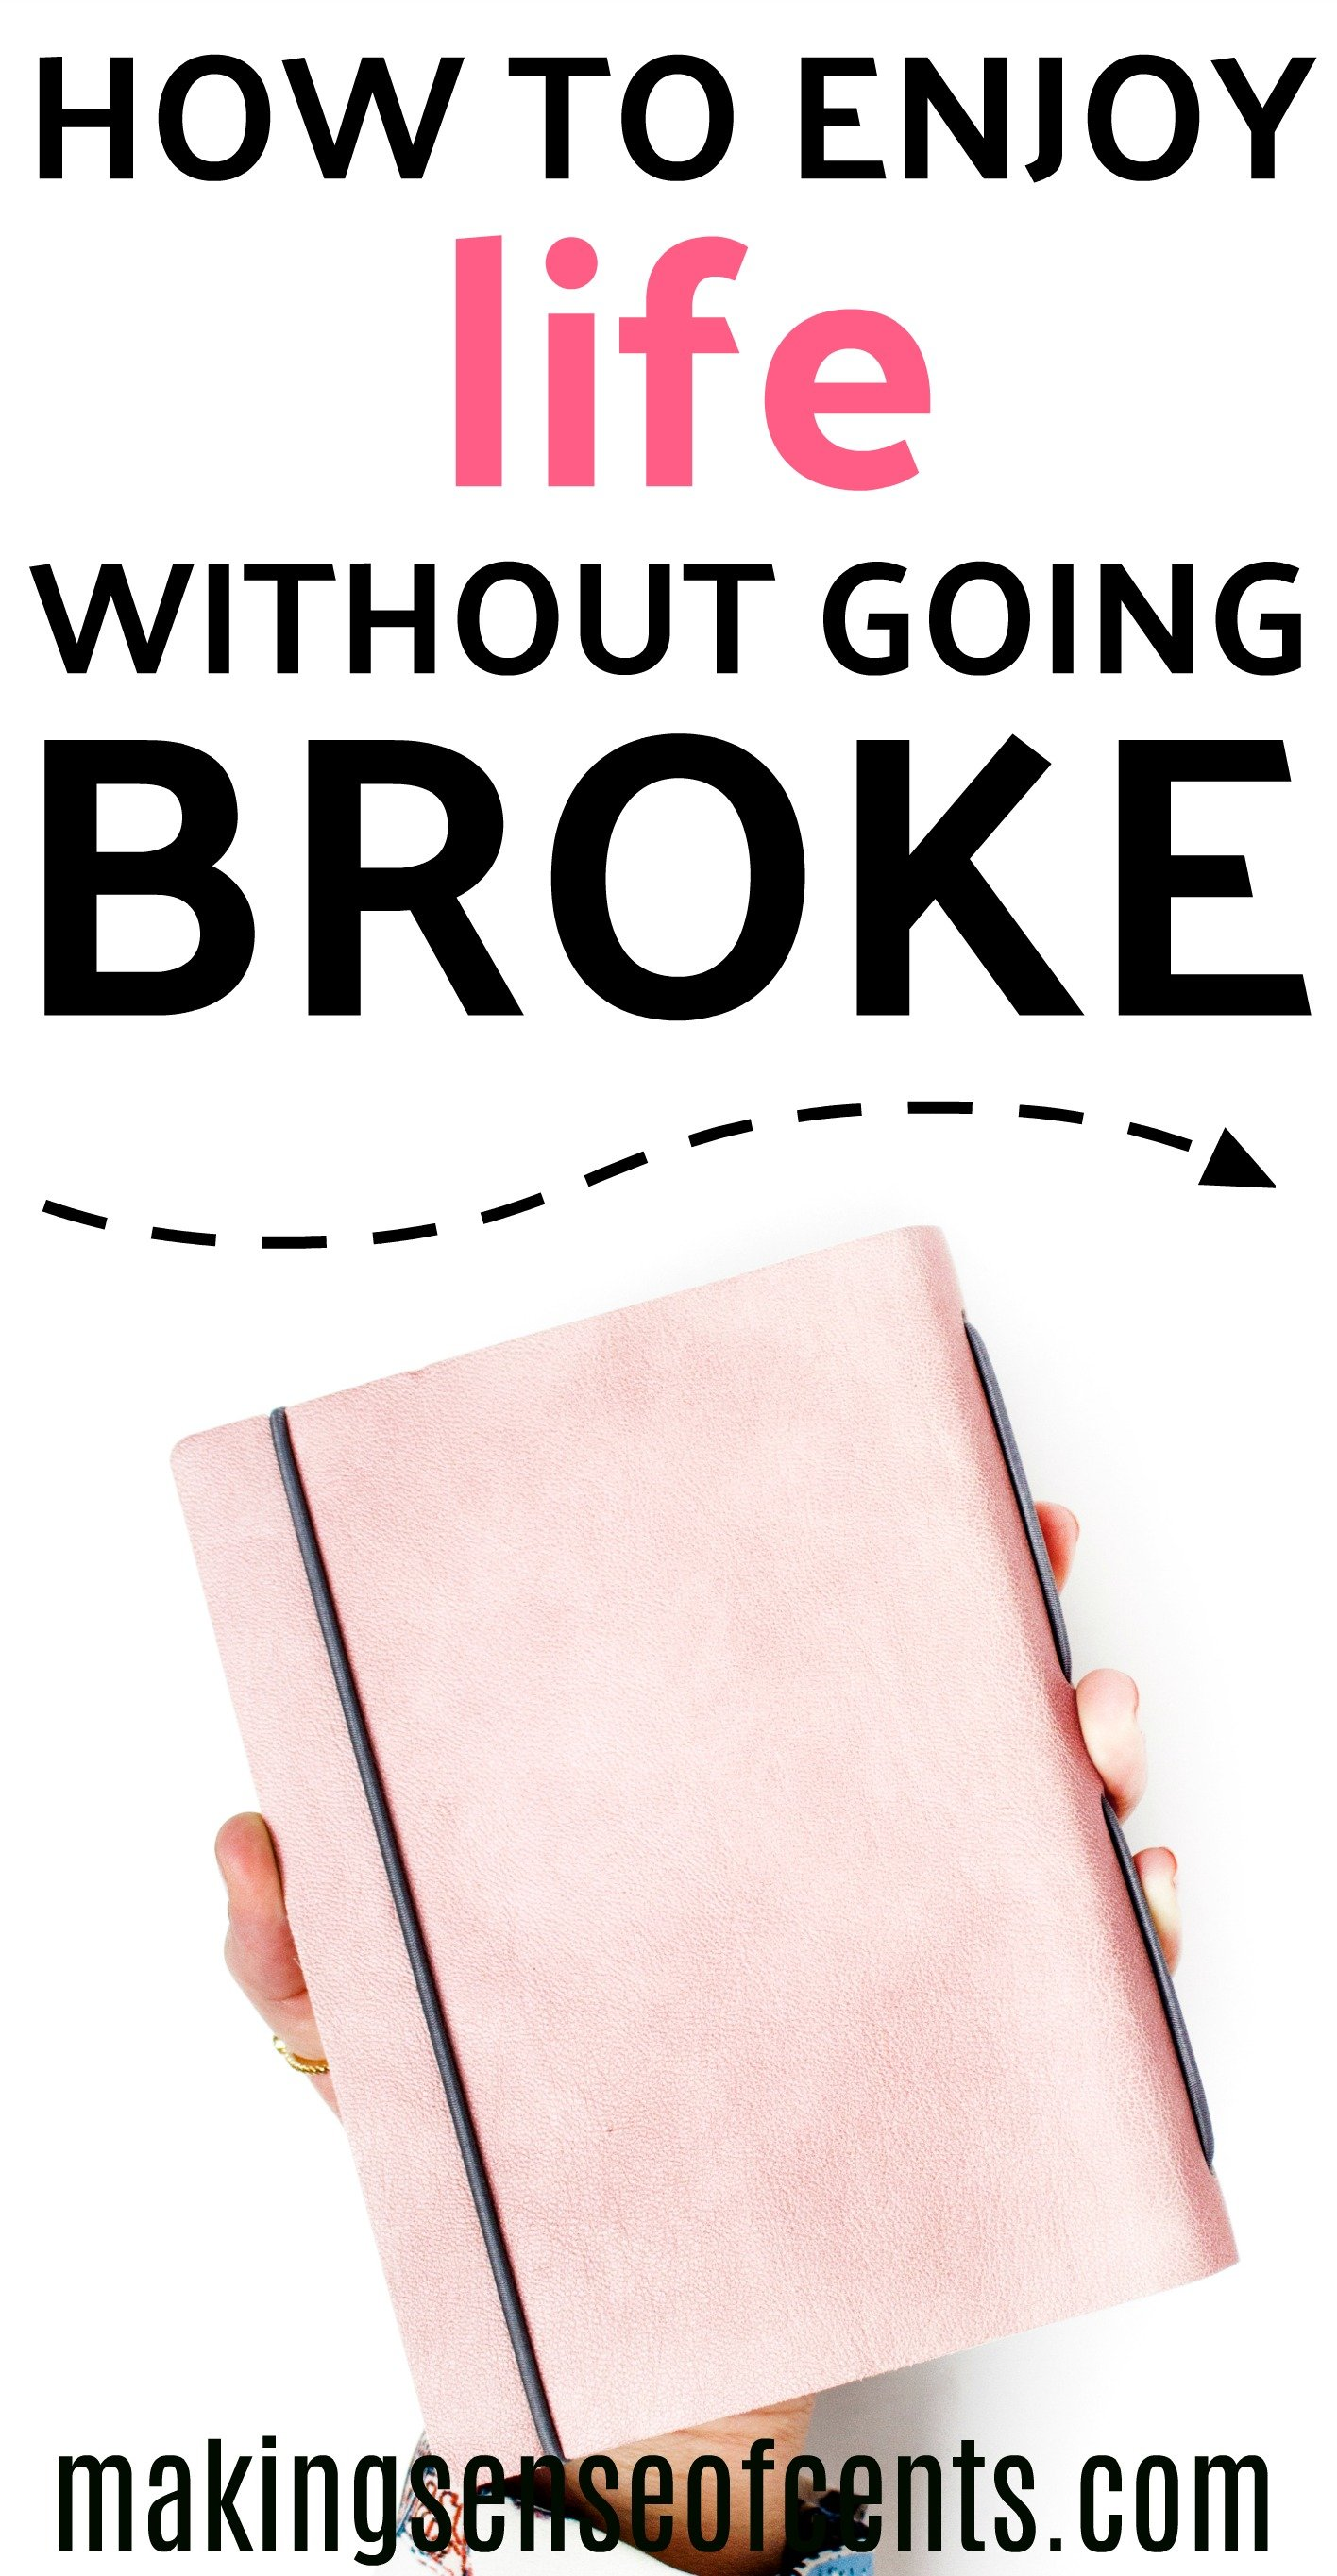 How To Enjoy Life Without Going Broke